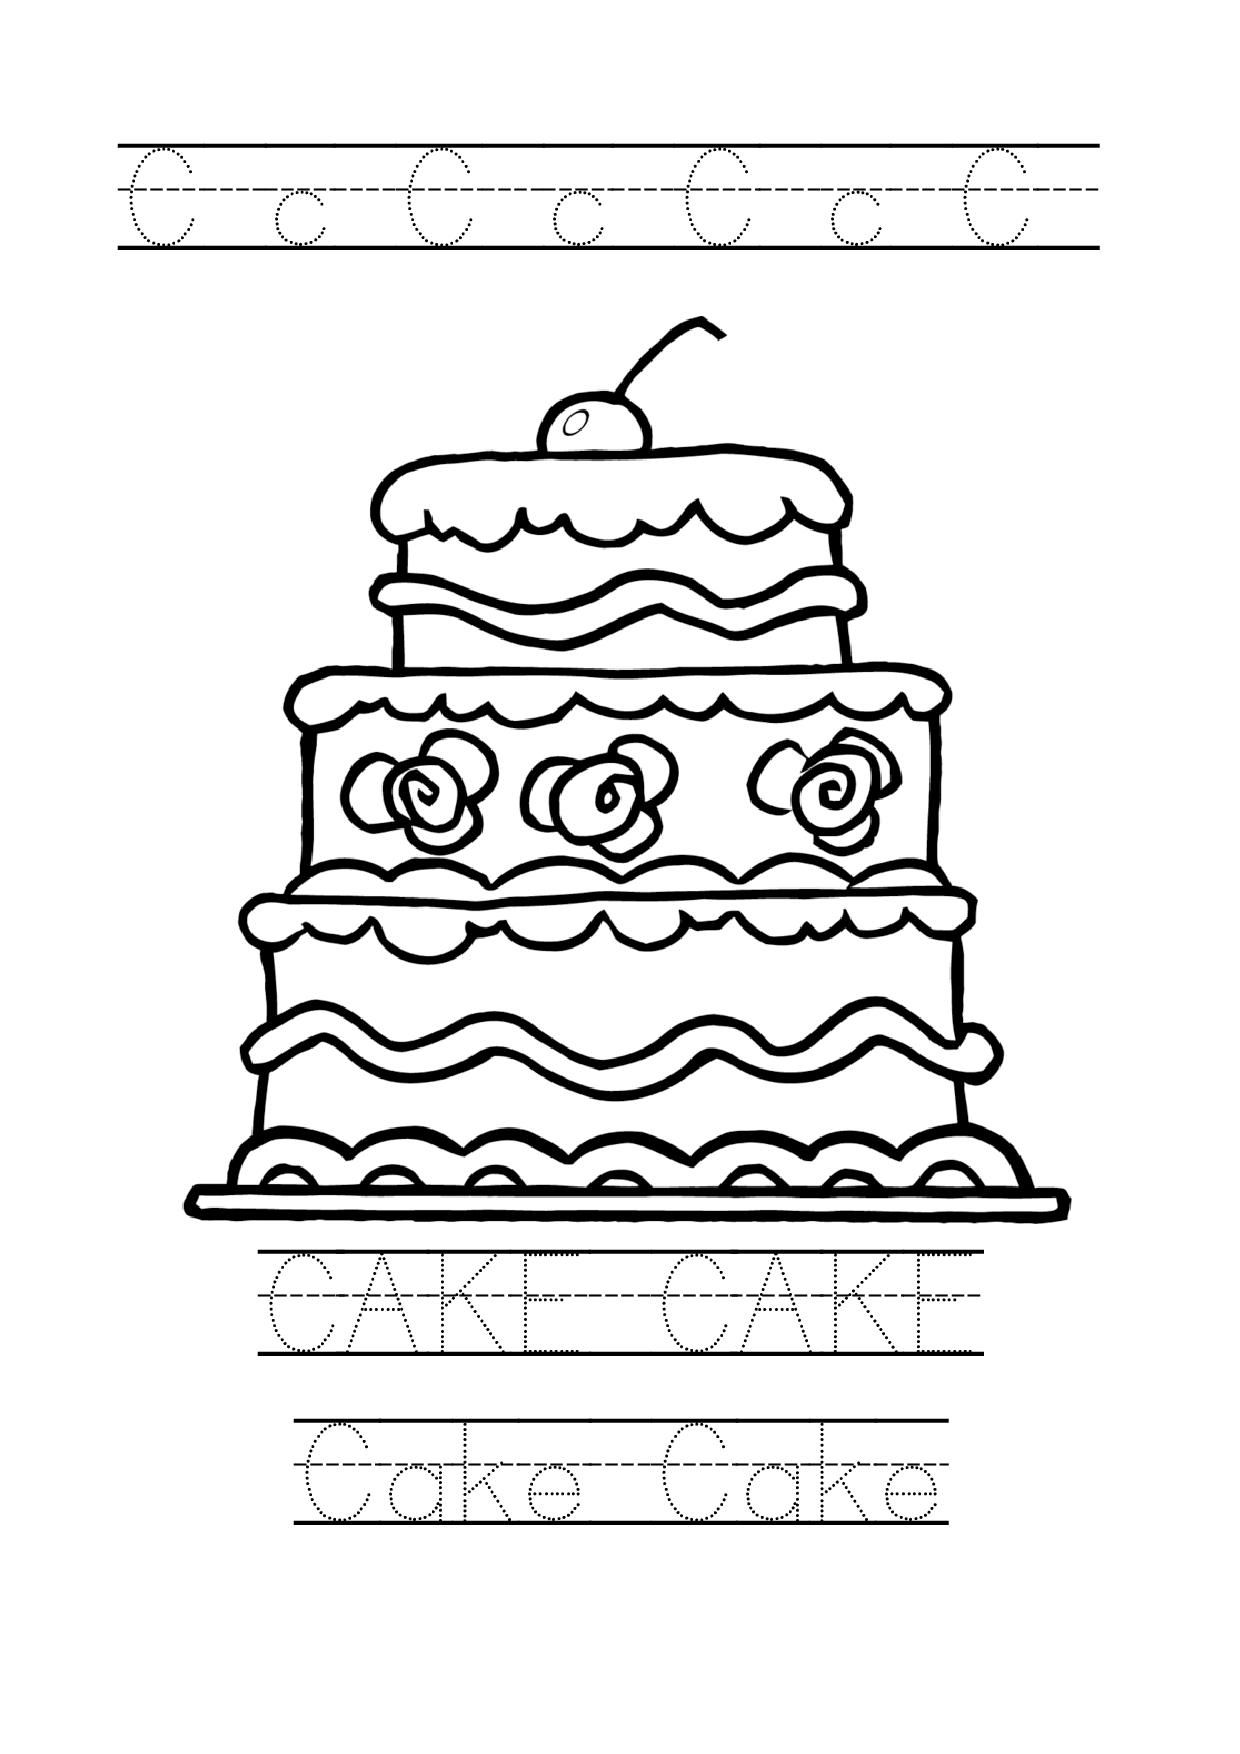 Tracing Word Cake Worksheet Cake Coloring Page For